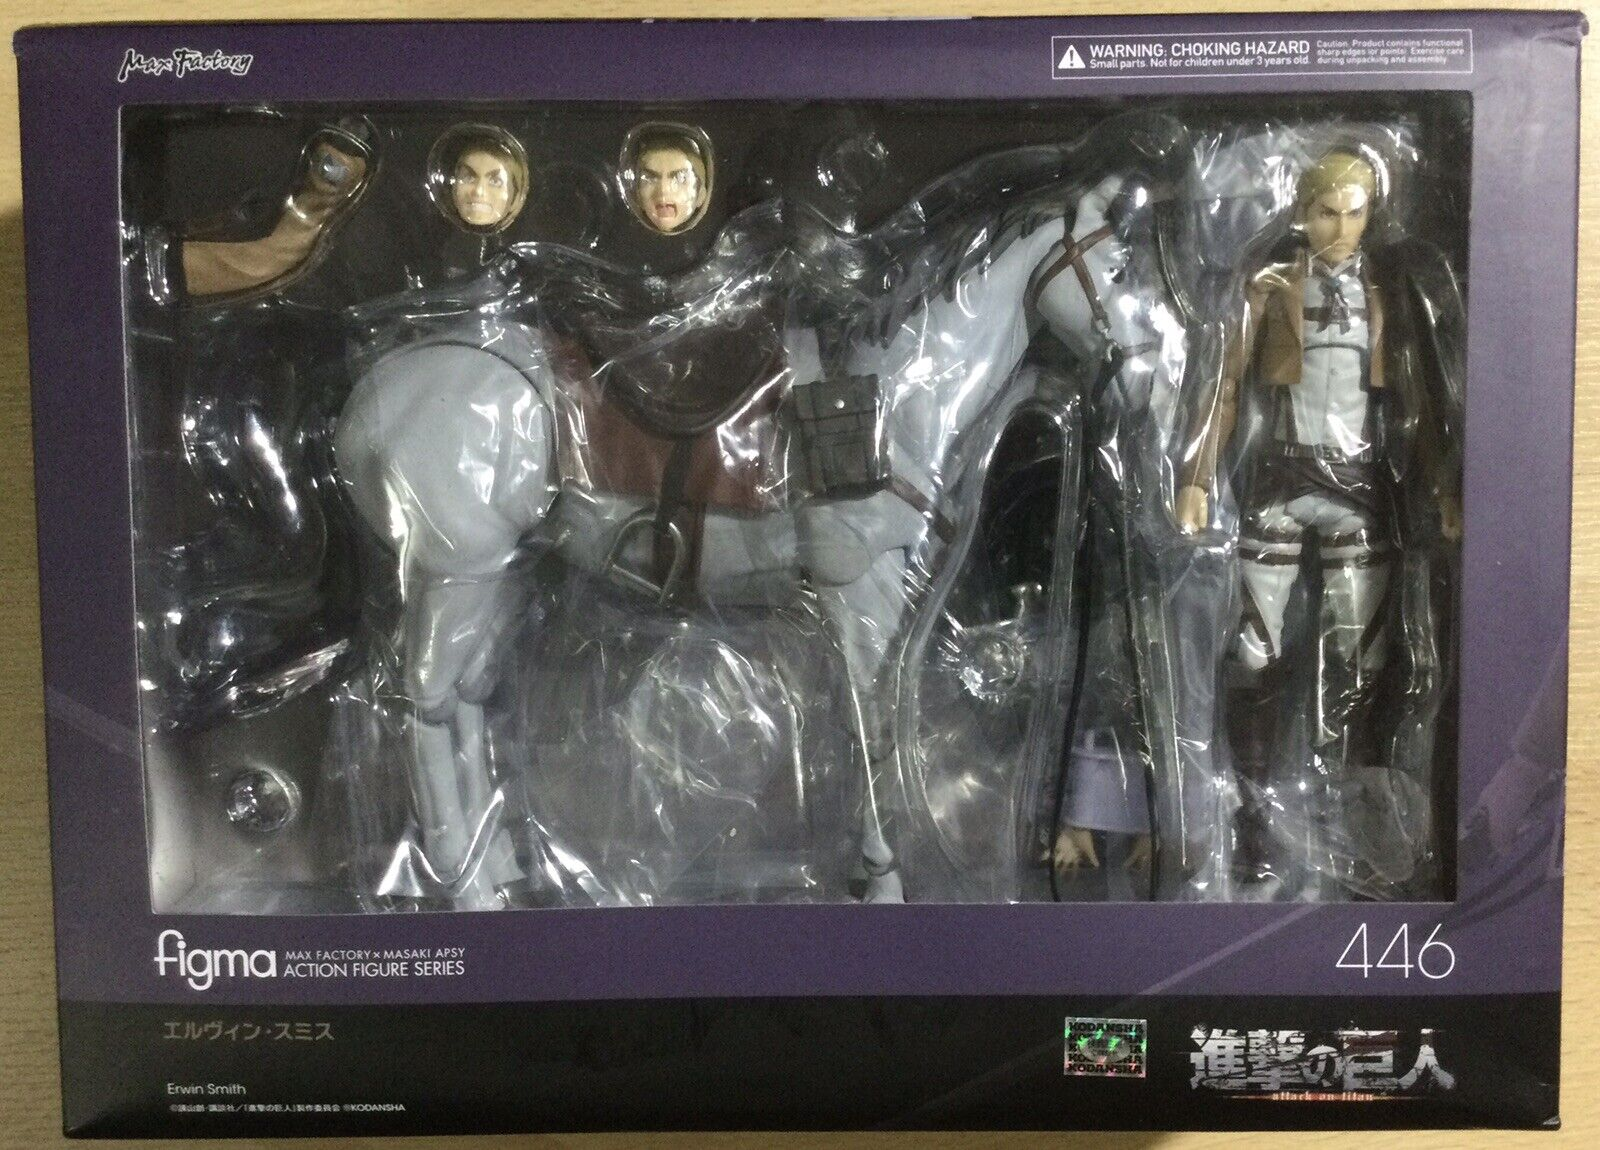 figma 446 Erwin Smith Attack On Titan Action Figure US SELLER Max Factory